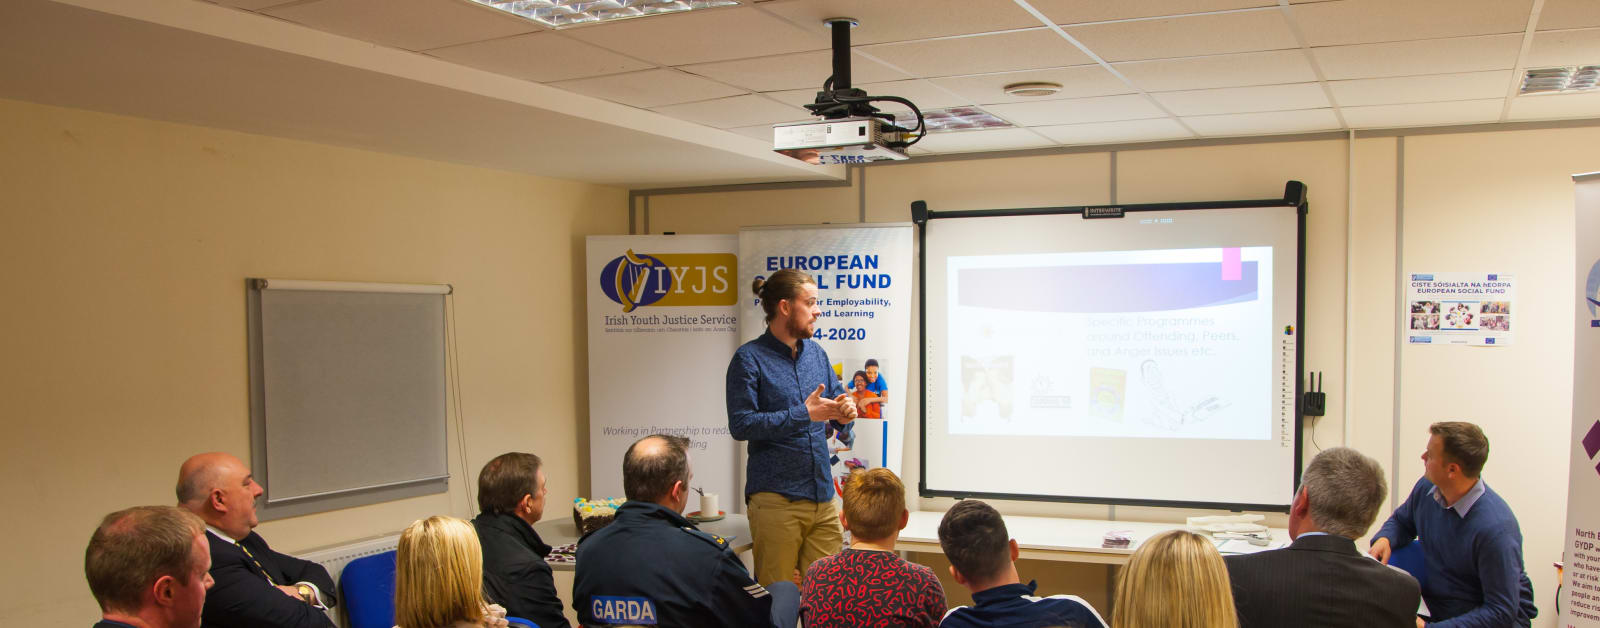 Extern launches new Garda Youth Diversion Project in Naas, Kildare